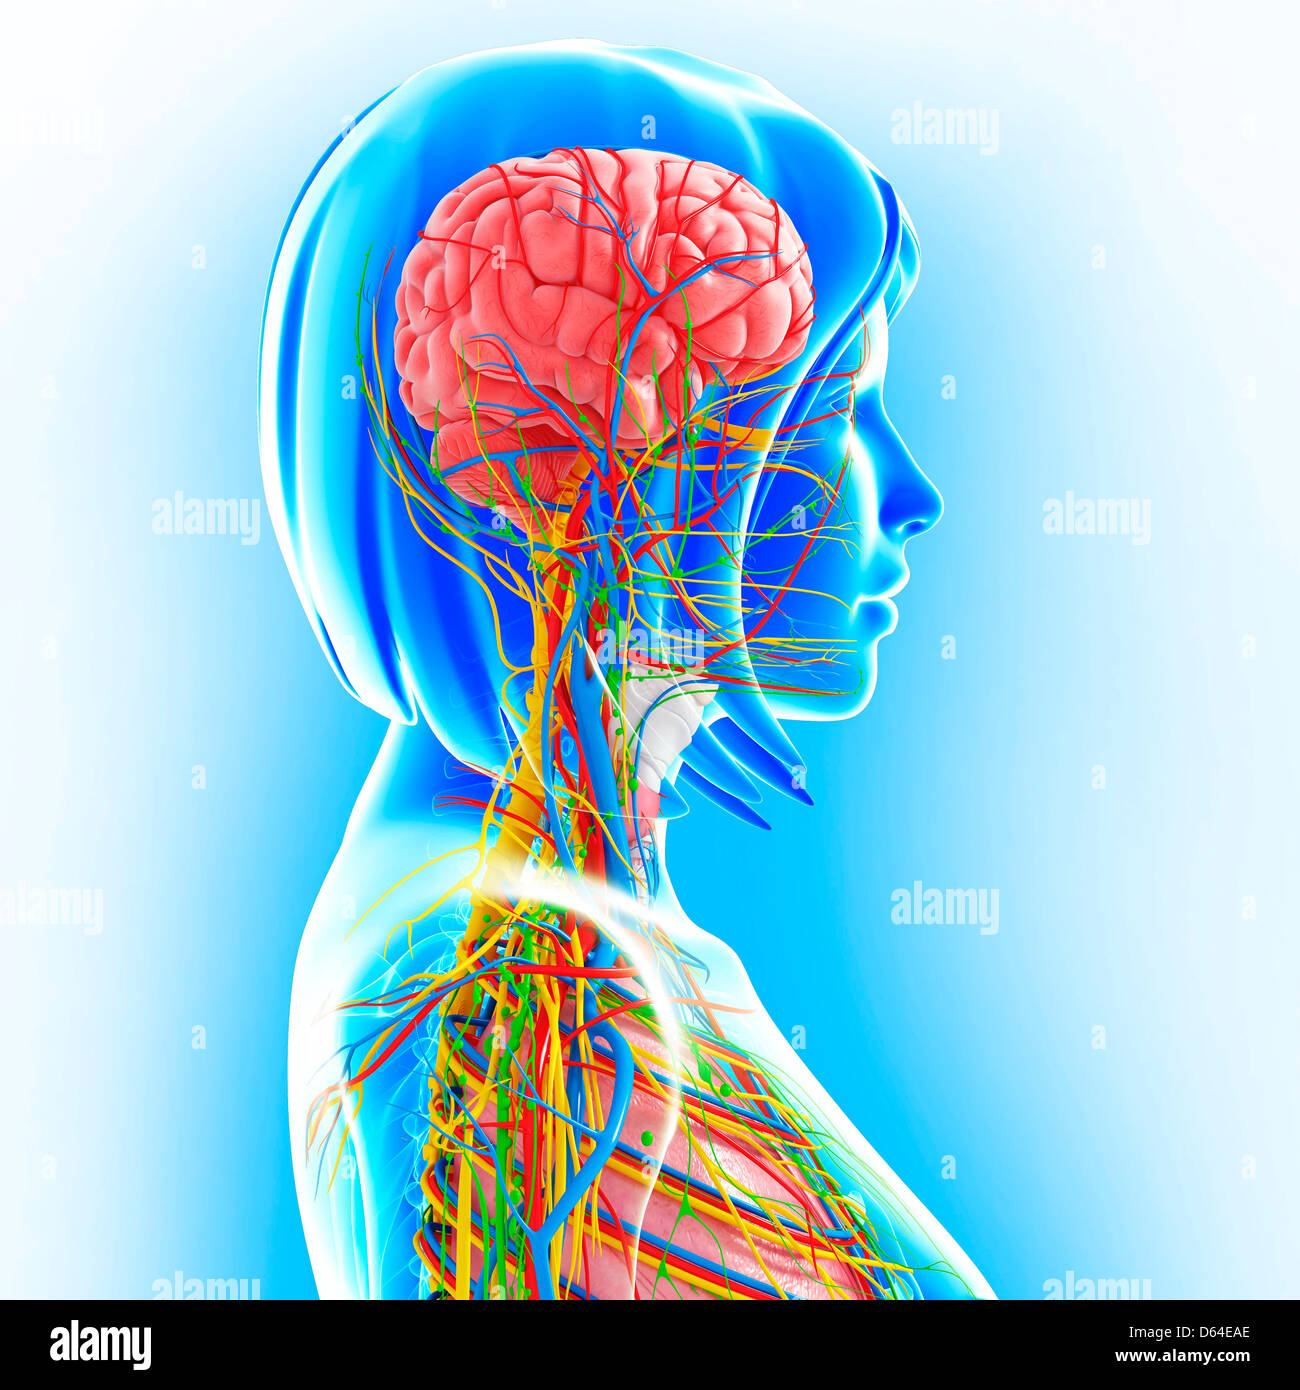 Upper body anatomy, artwork Stock Photo: 55418118 - Alamy